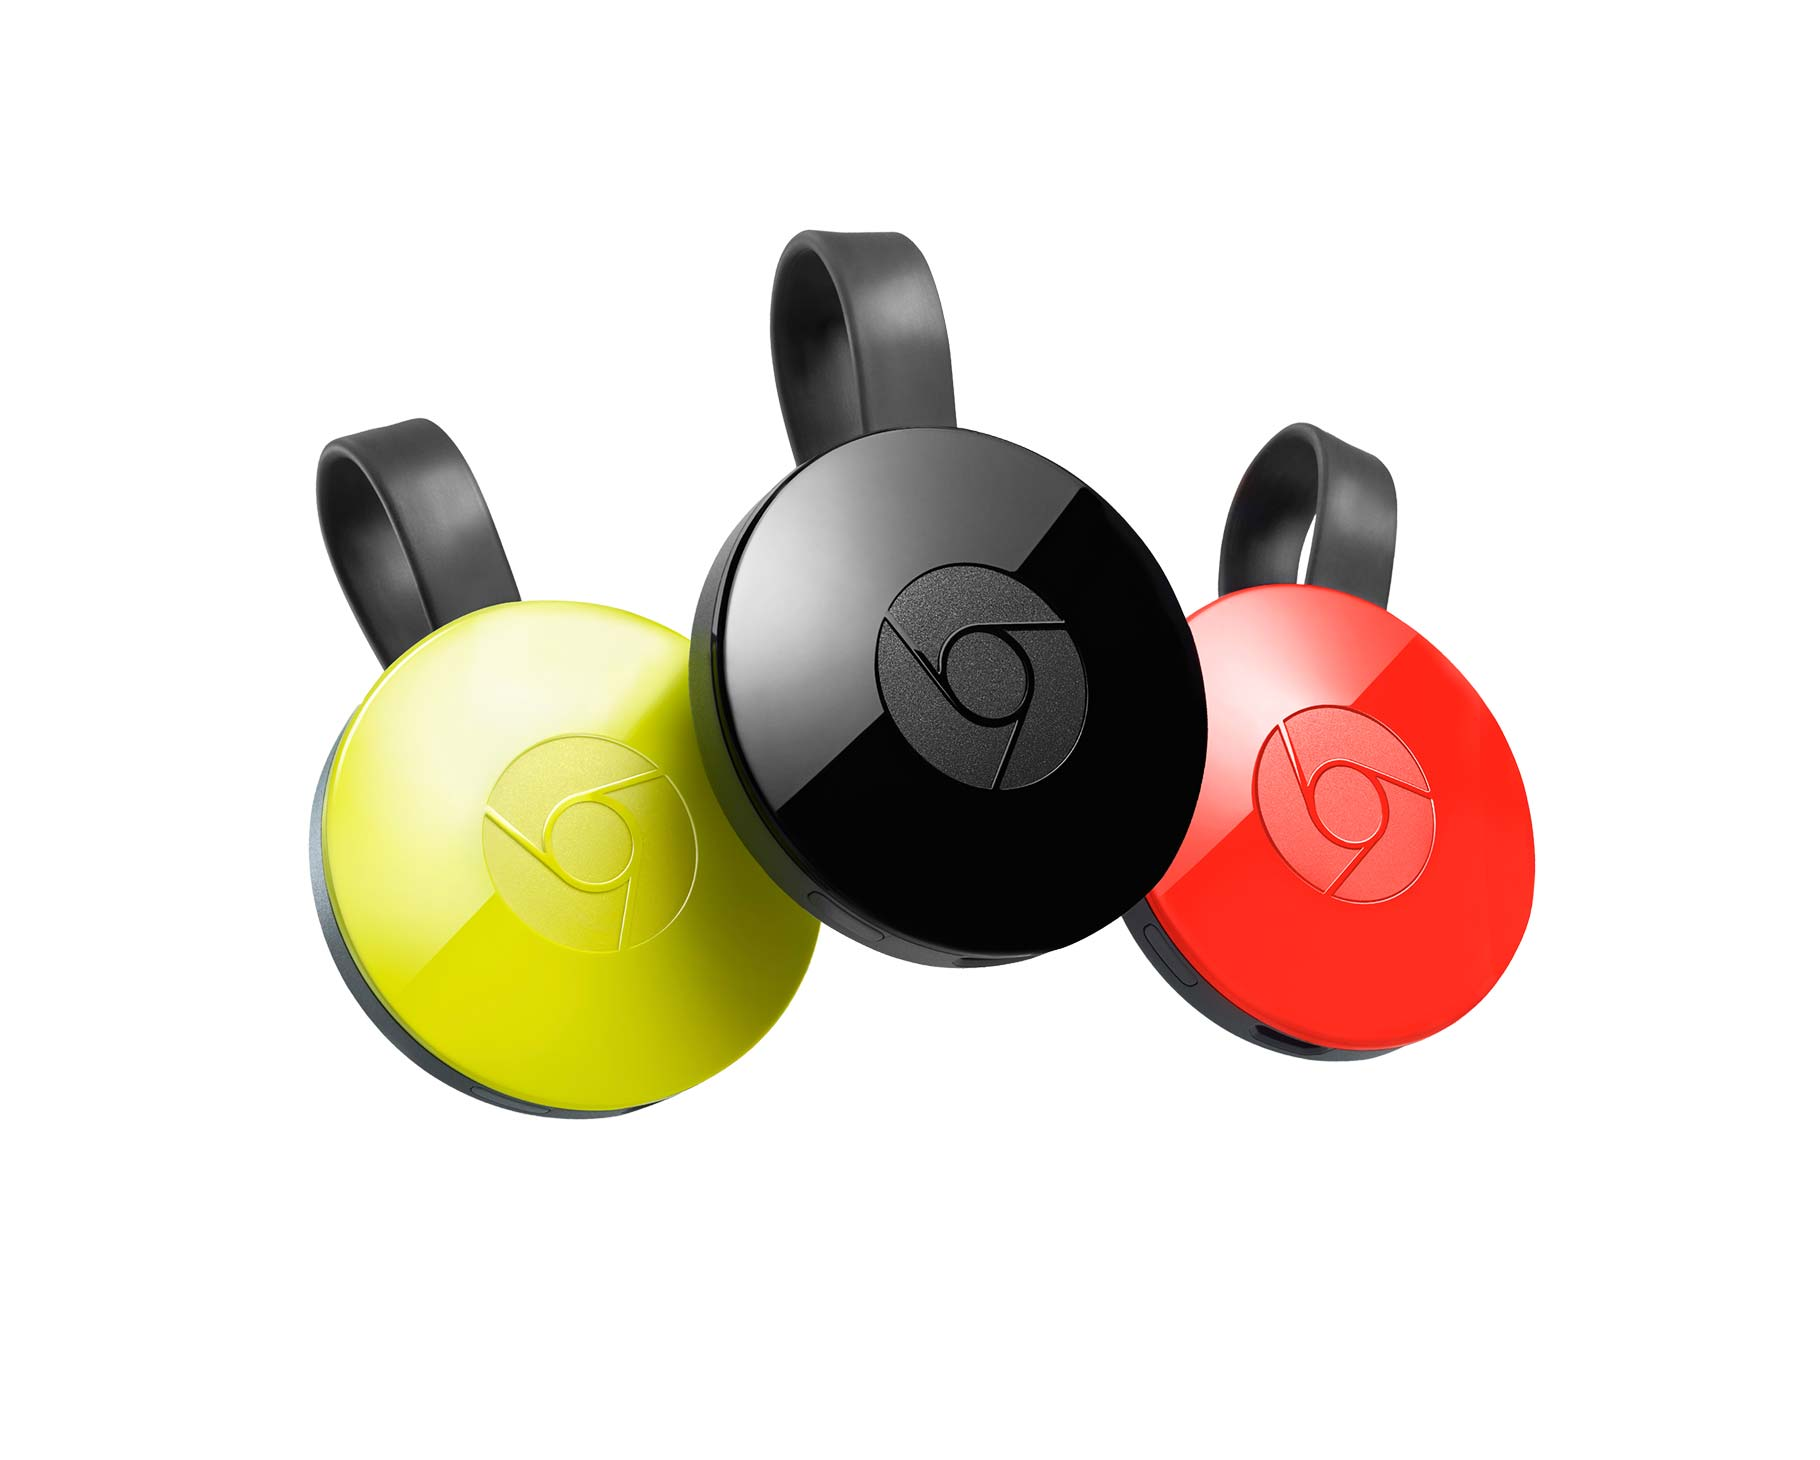 Google's new Chromecast